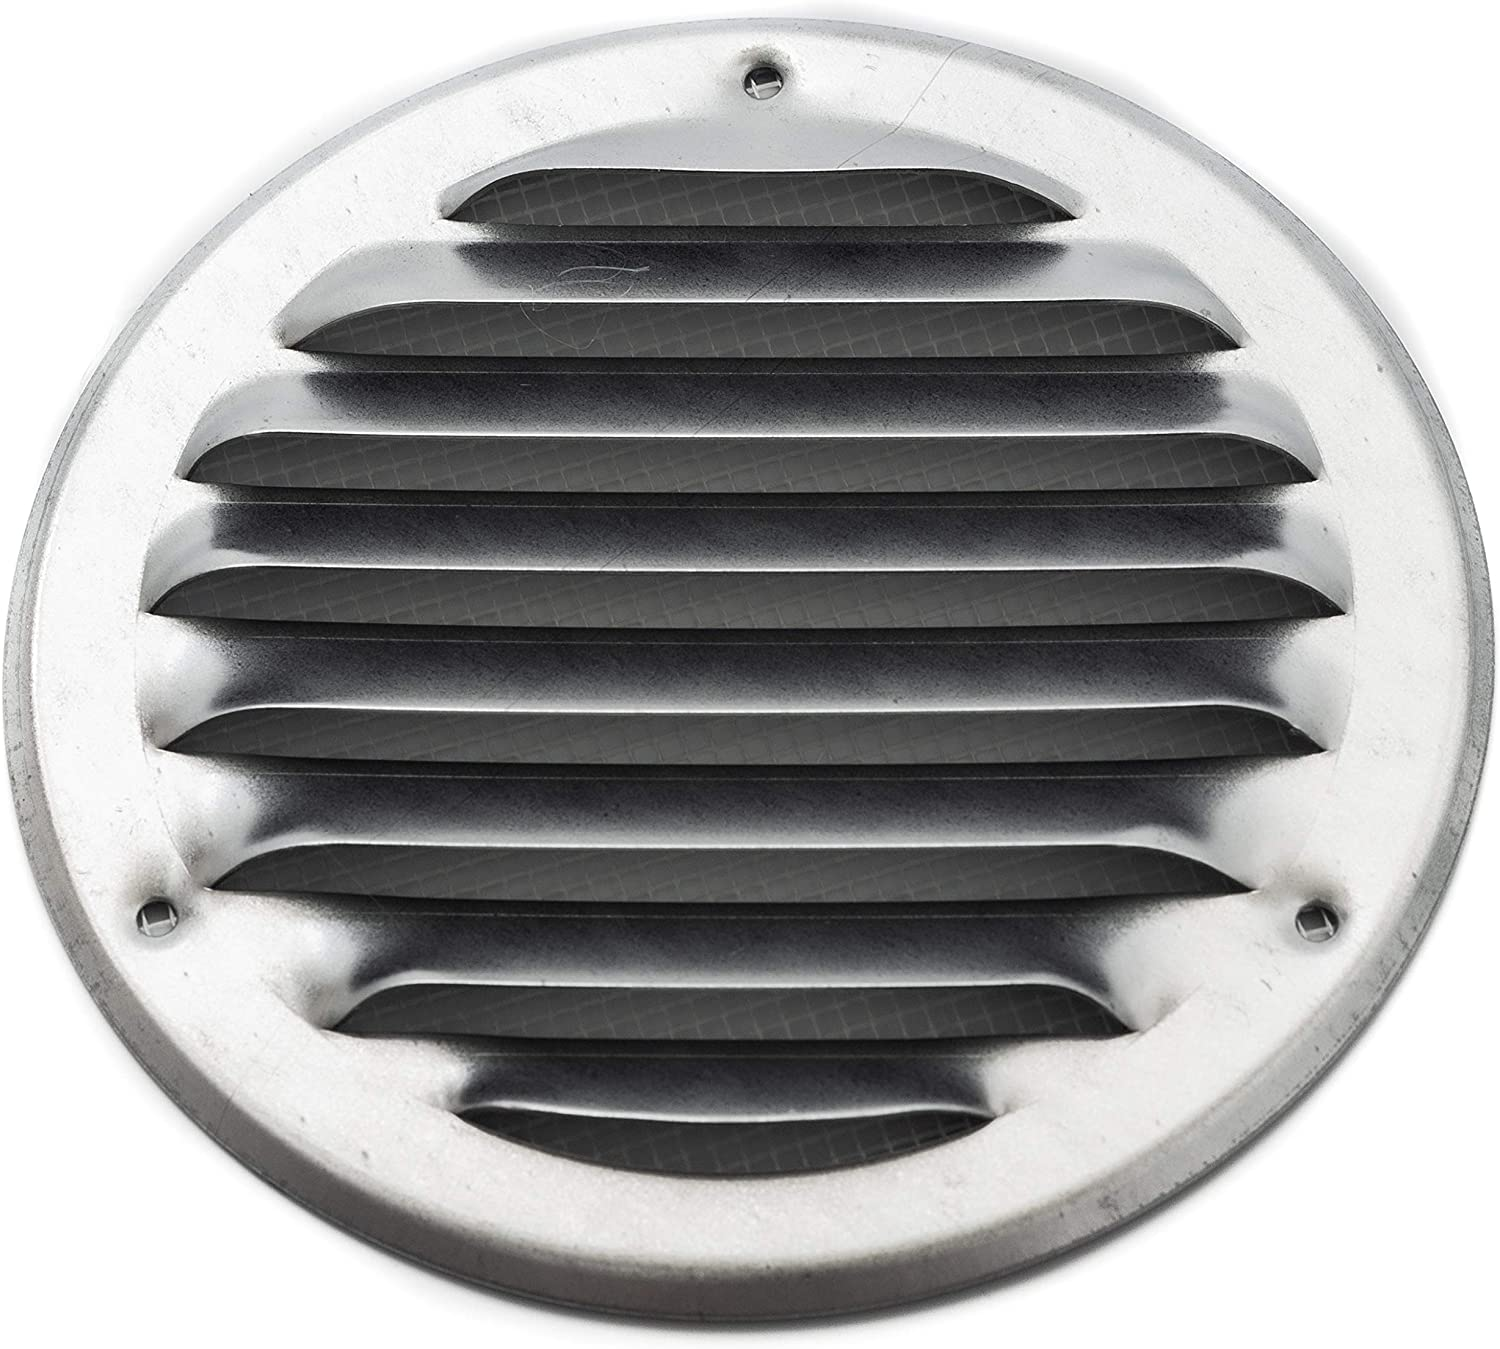 Vent Systems 6'' Inch Galvanized Soffit Vent Cover - Round Air Vent Louver - Grill Cover - Built-in Insect Screen - HVAC Vents for Bathroom, Home Office, Kitchen